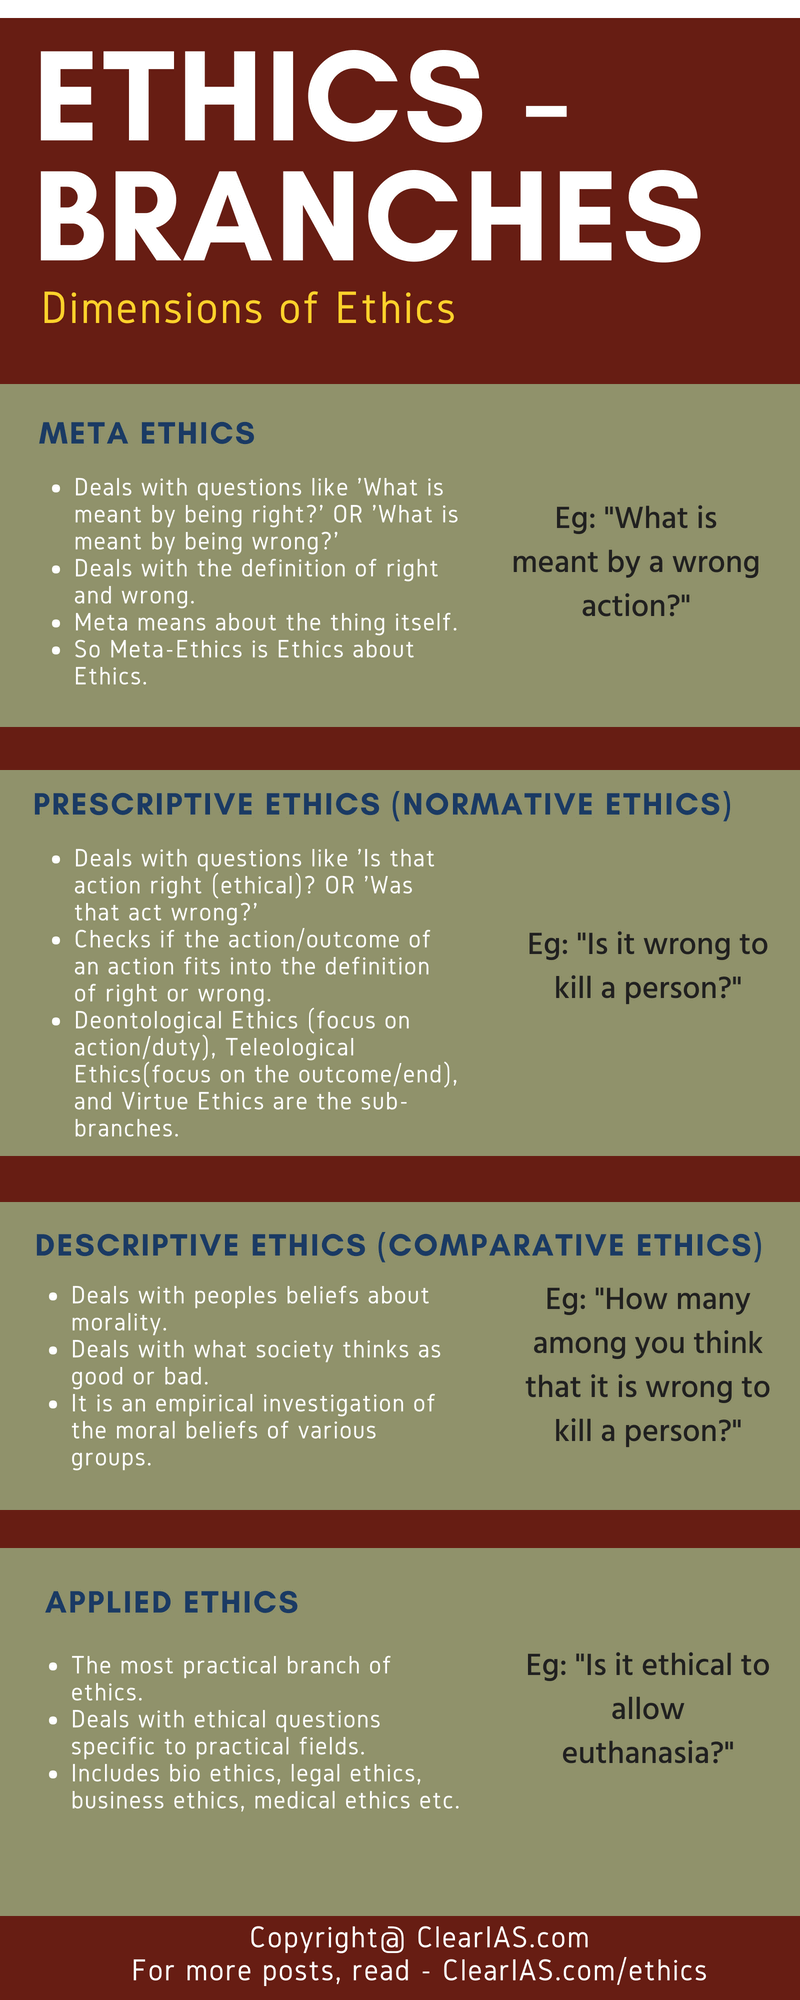 Dimensions of Ethics (Branches of Ethics)